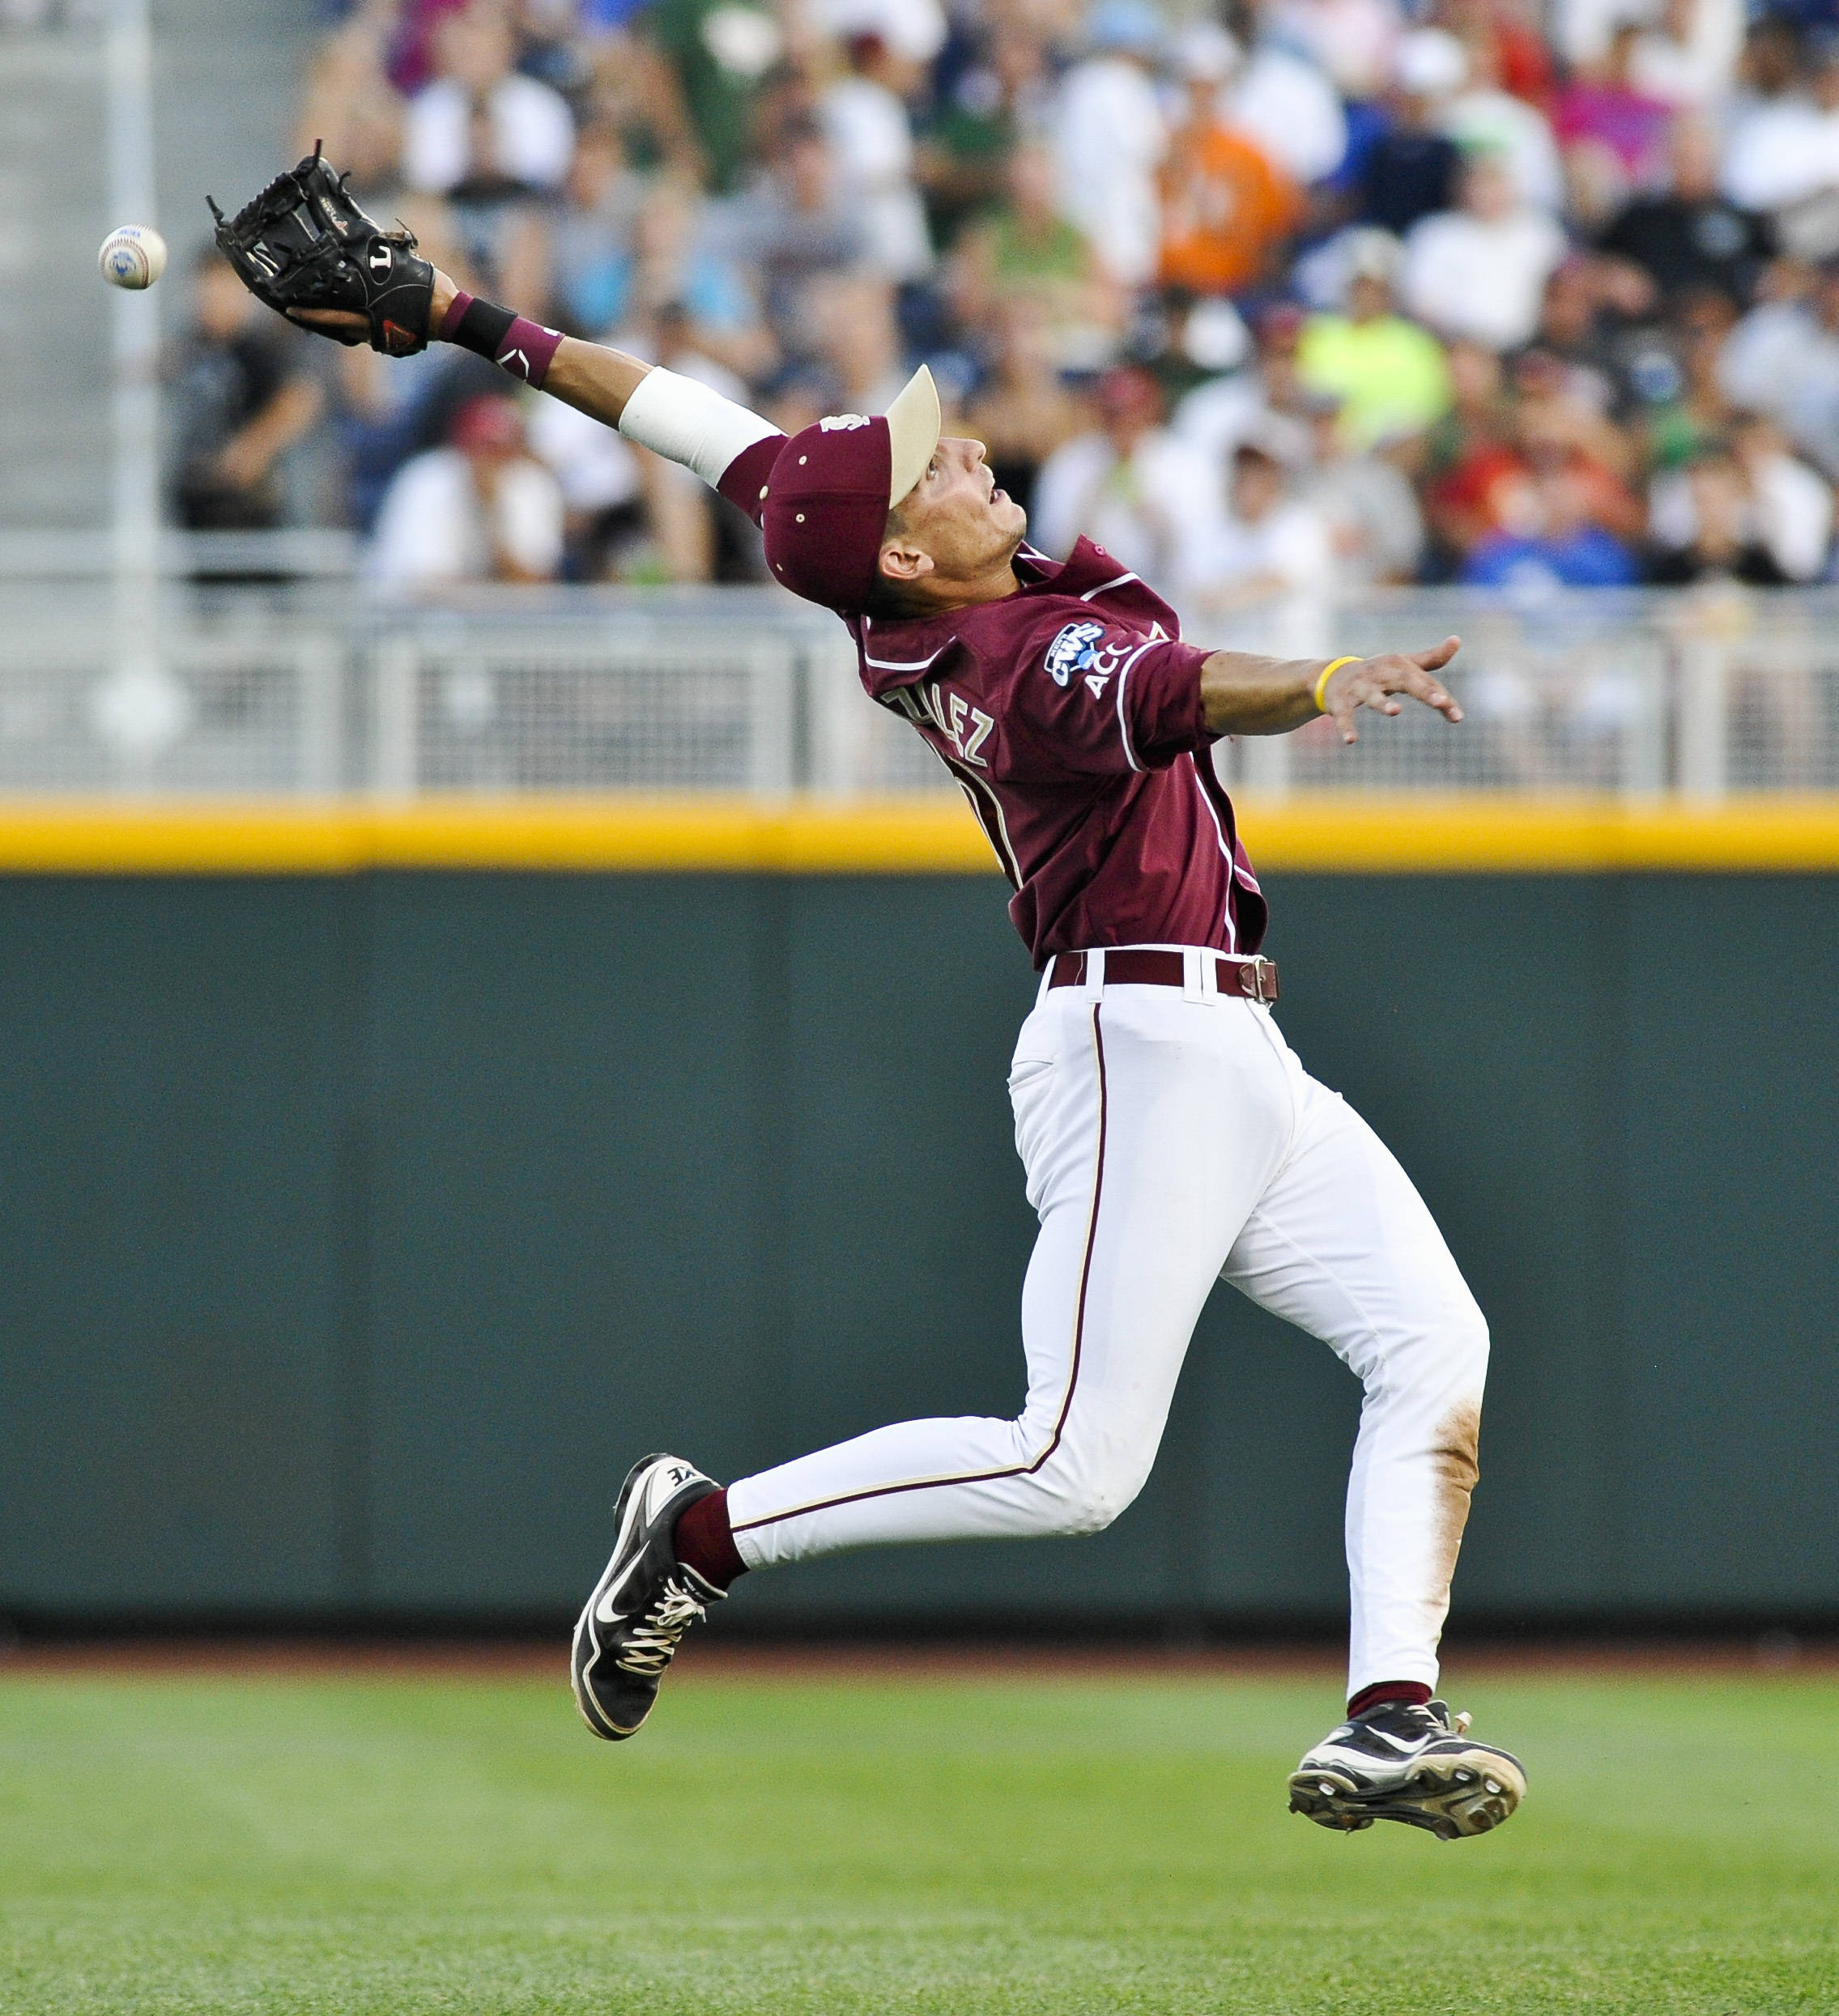 Florida State shortstop Justin Gonzalez can't reach the ball, hit for a single by UCLA's Beau Amaral, in the fourth inning. (AP Photo/Eric Francis)